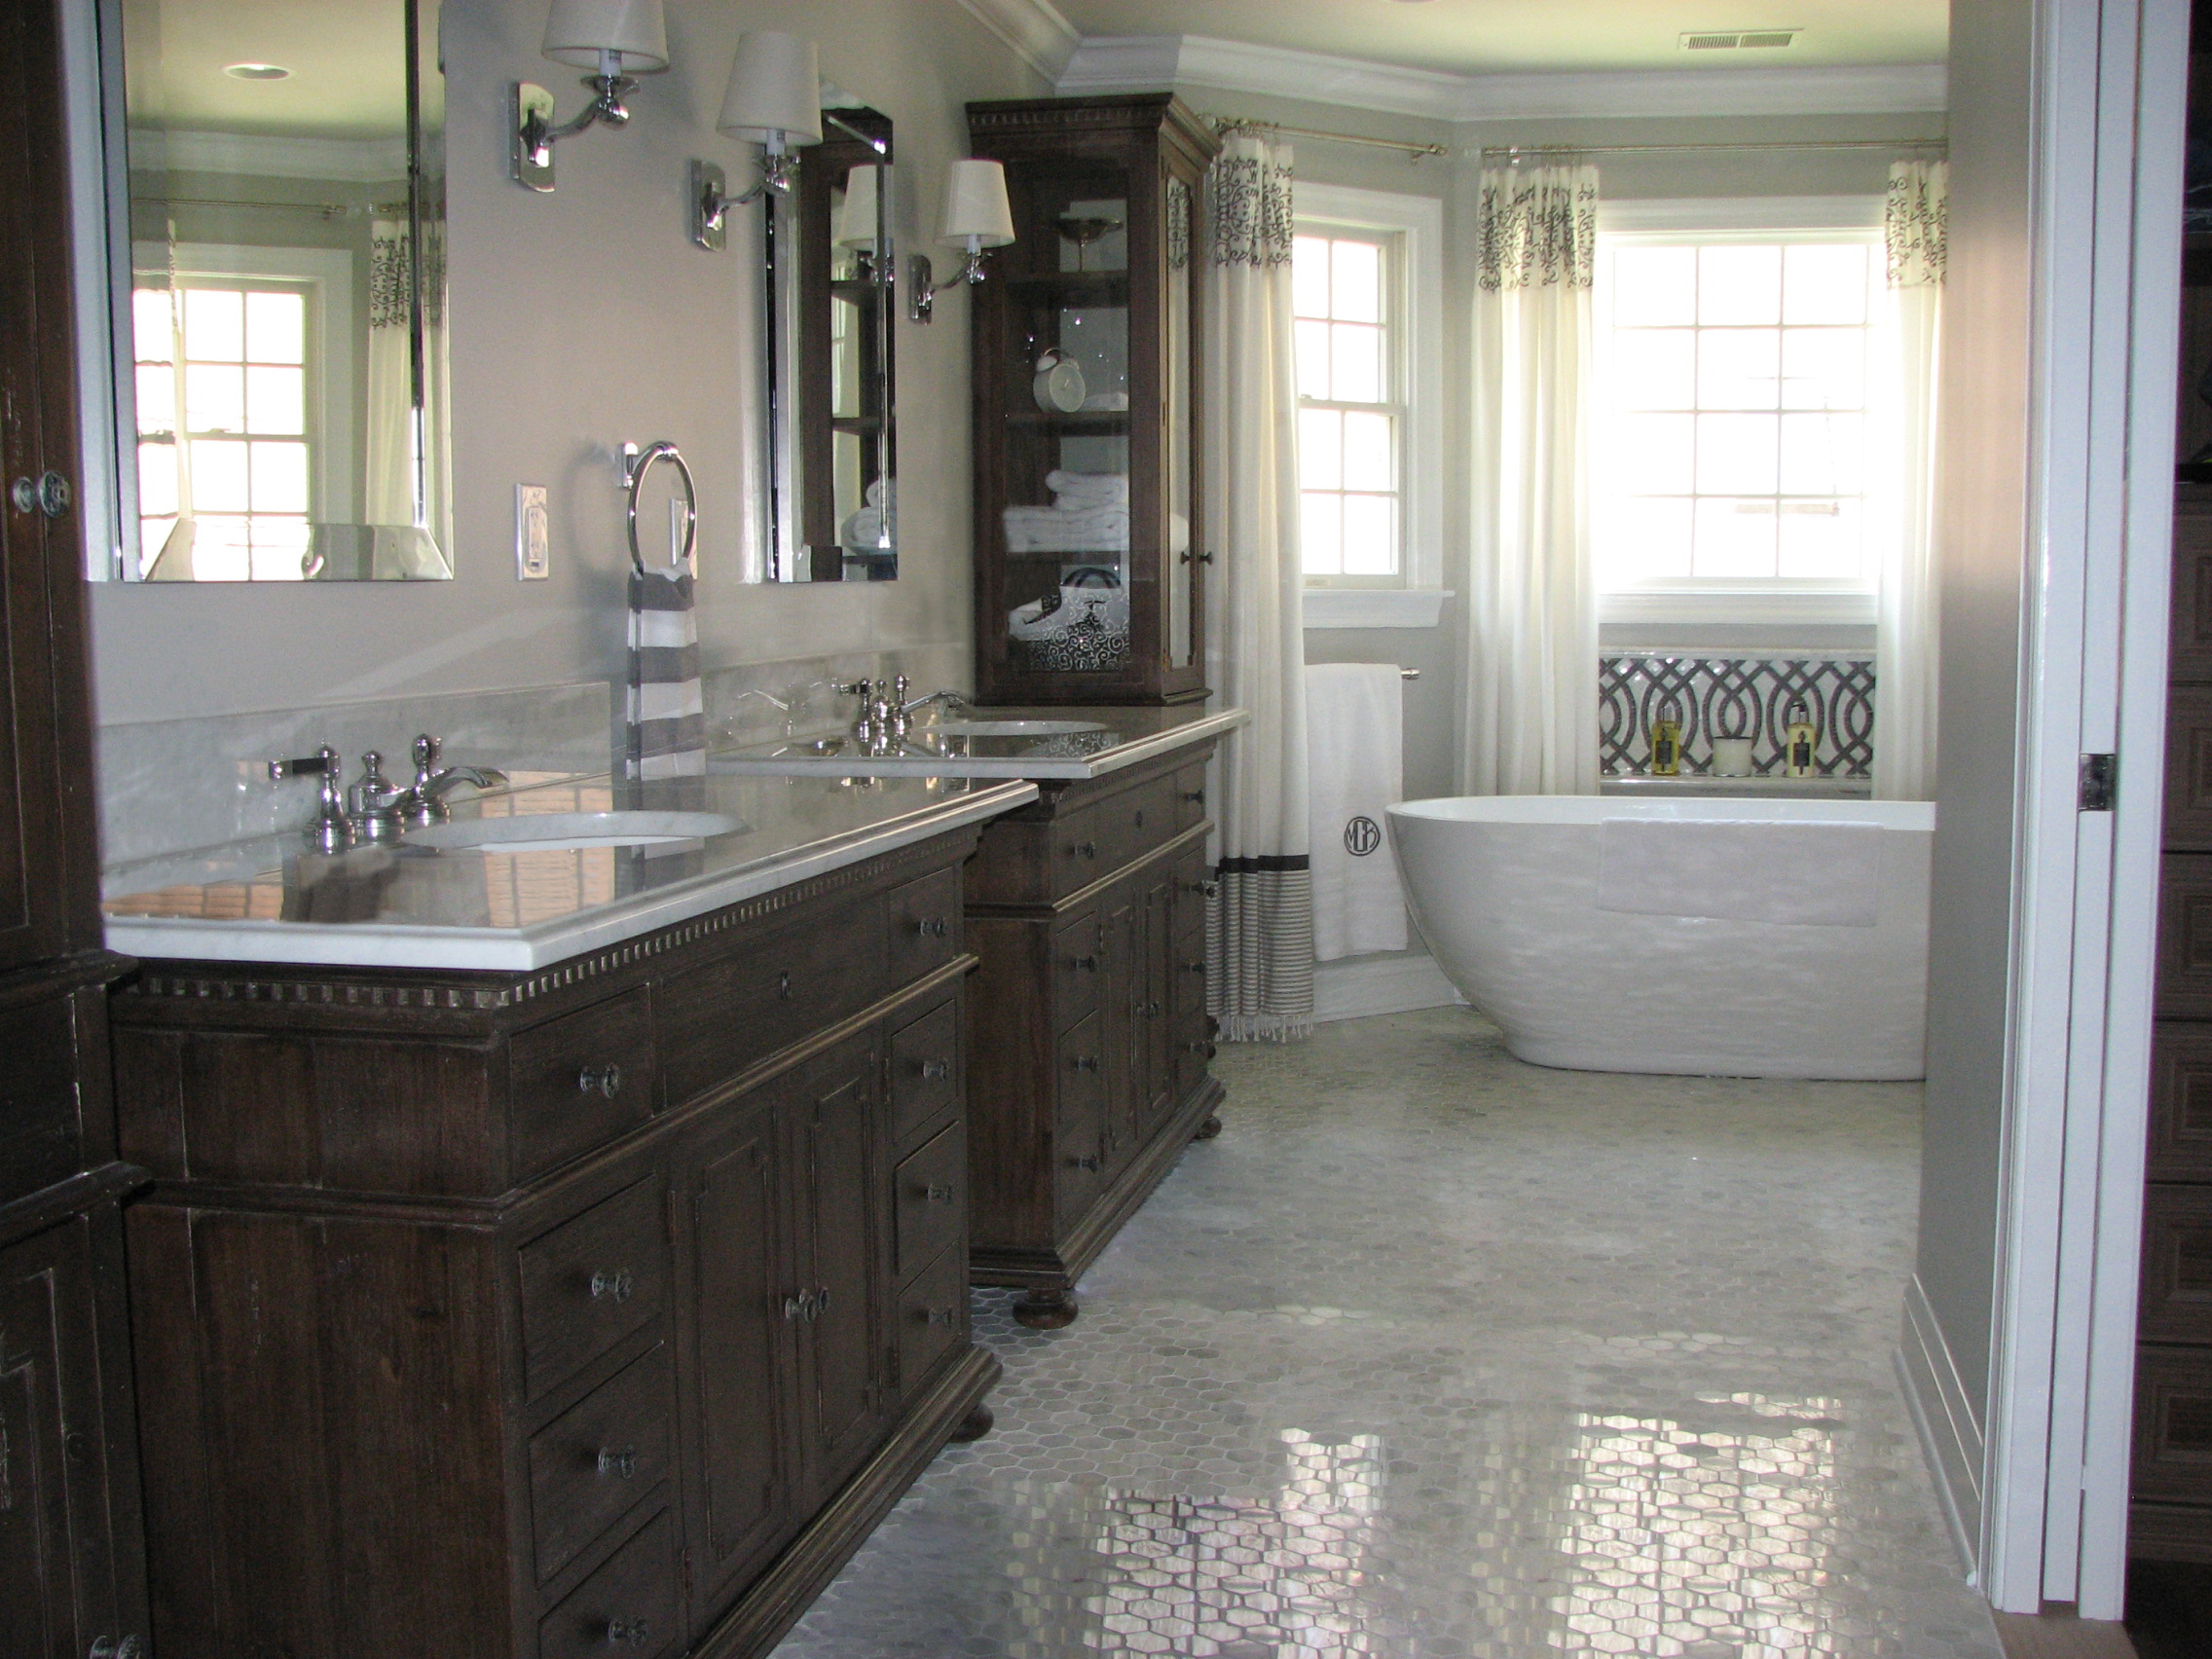 The Basic Bathroom Co. - Bathroom Remodeling